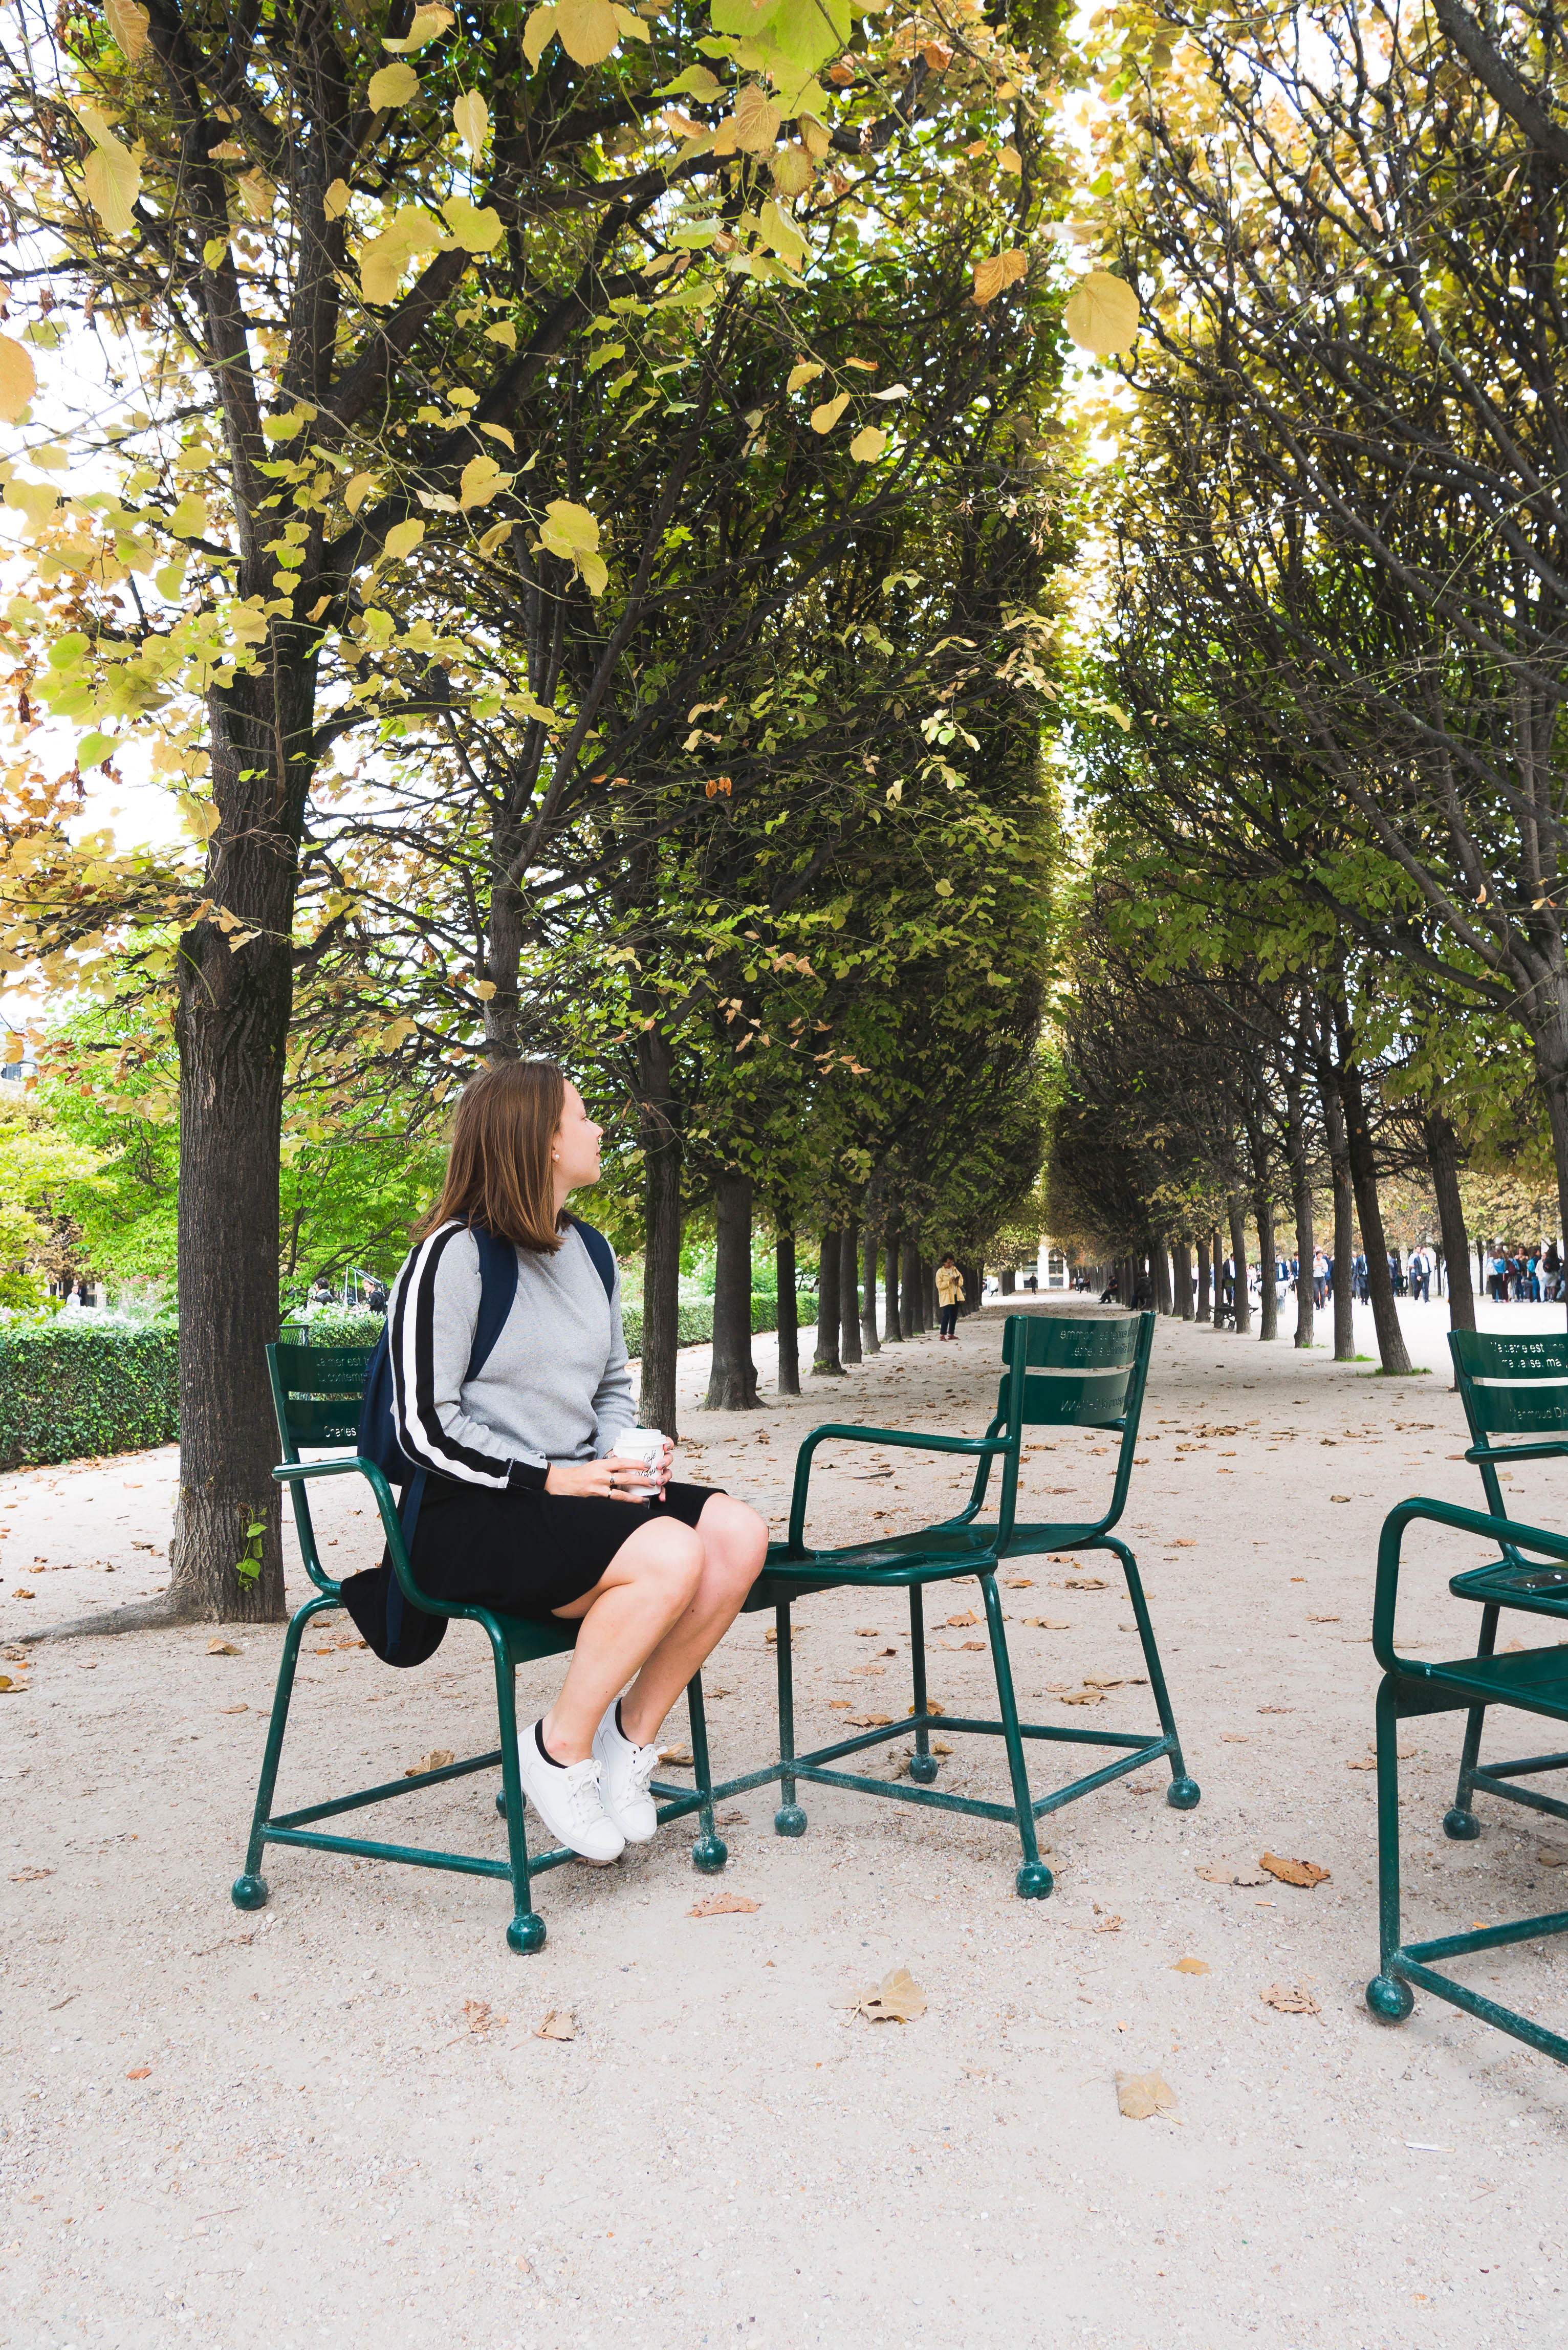 Parks in Paris